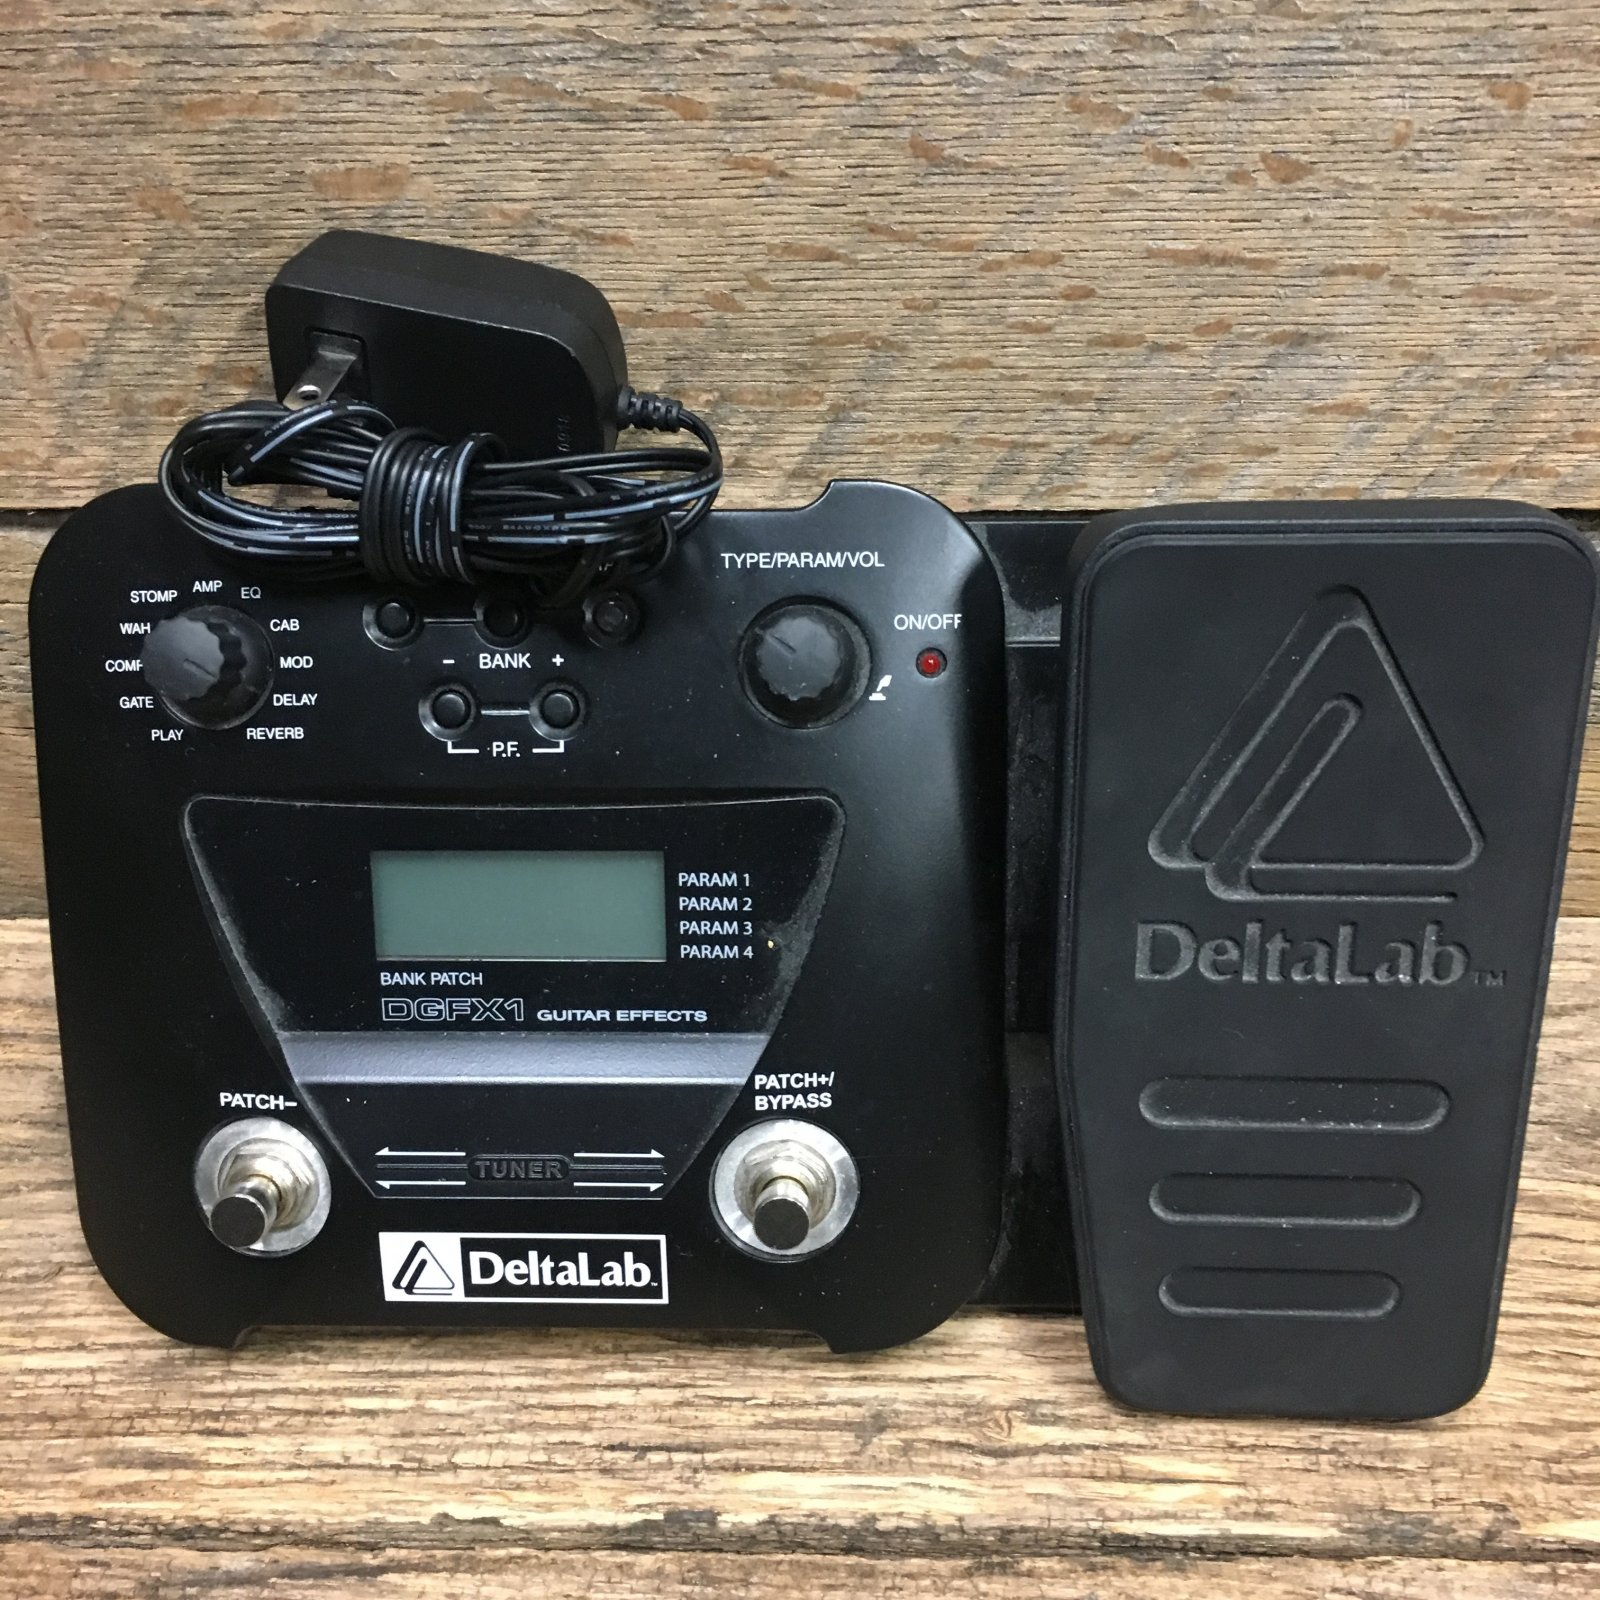 Used Deltalab DGFX1 Guitar Effects